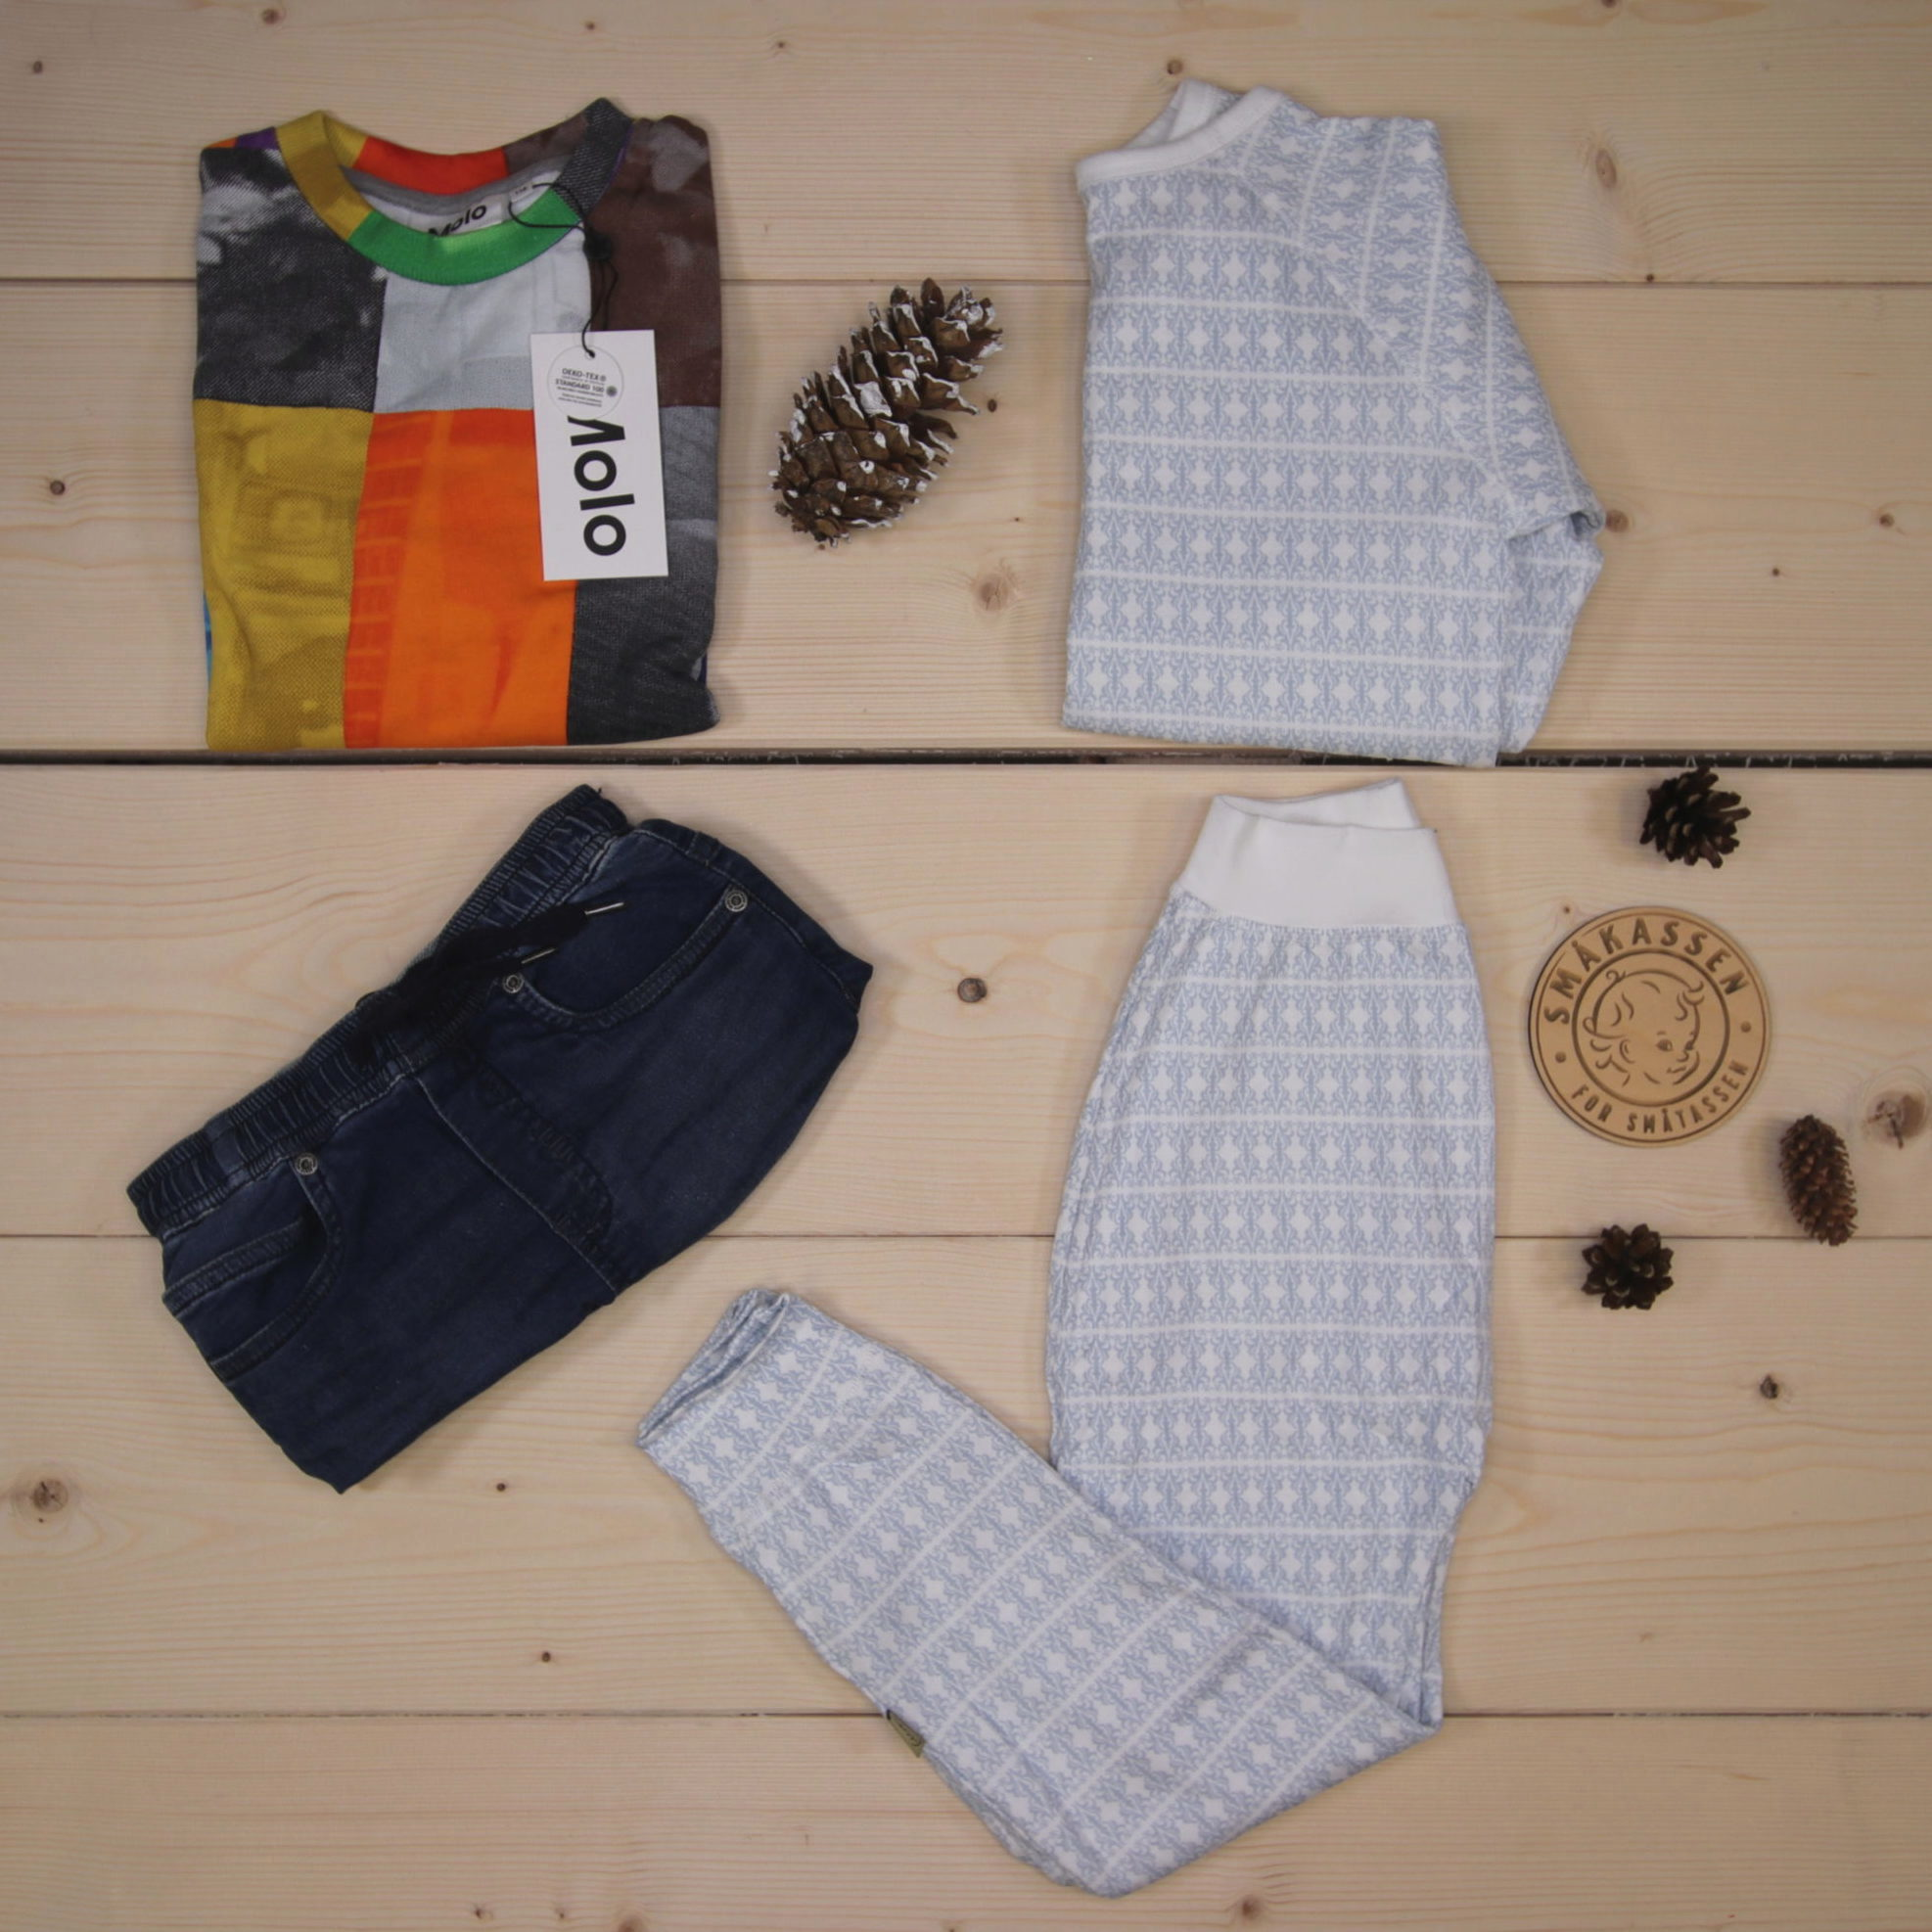 This is a 1500 NOK* Småkassen that we prepared for a boy  in the styles cute, cool, and colorful in size 116